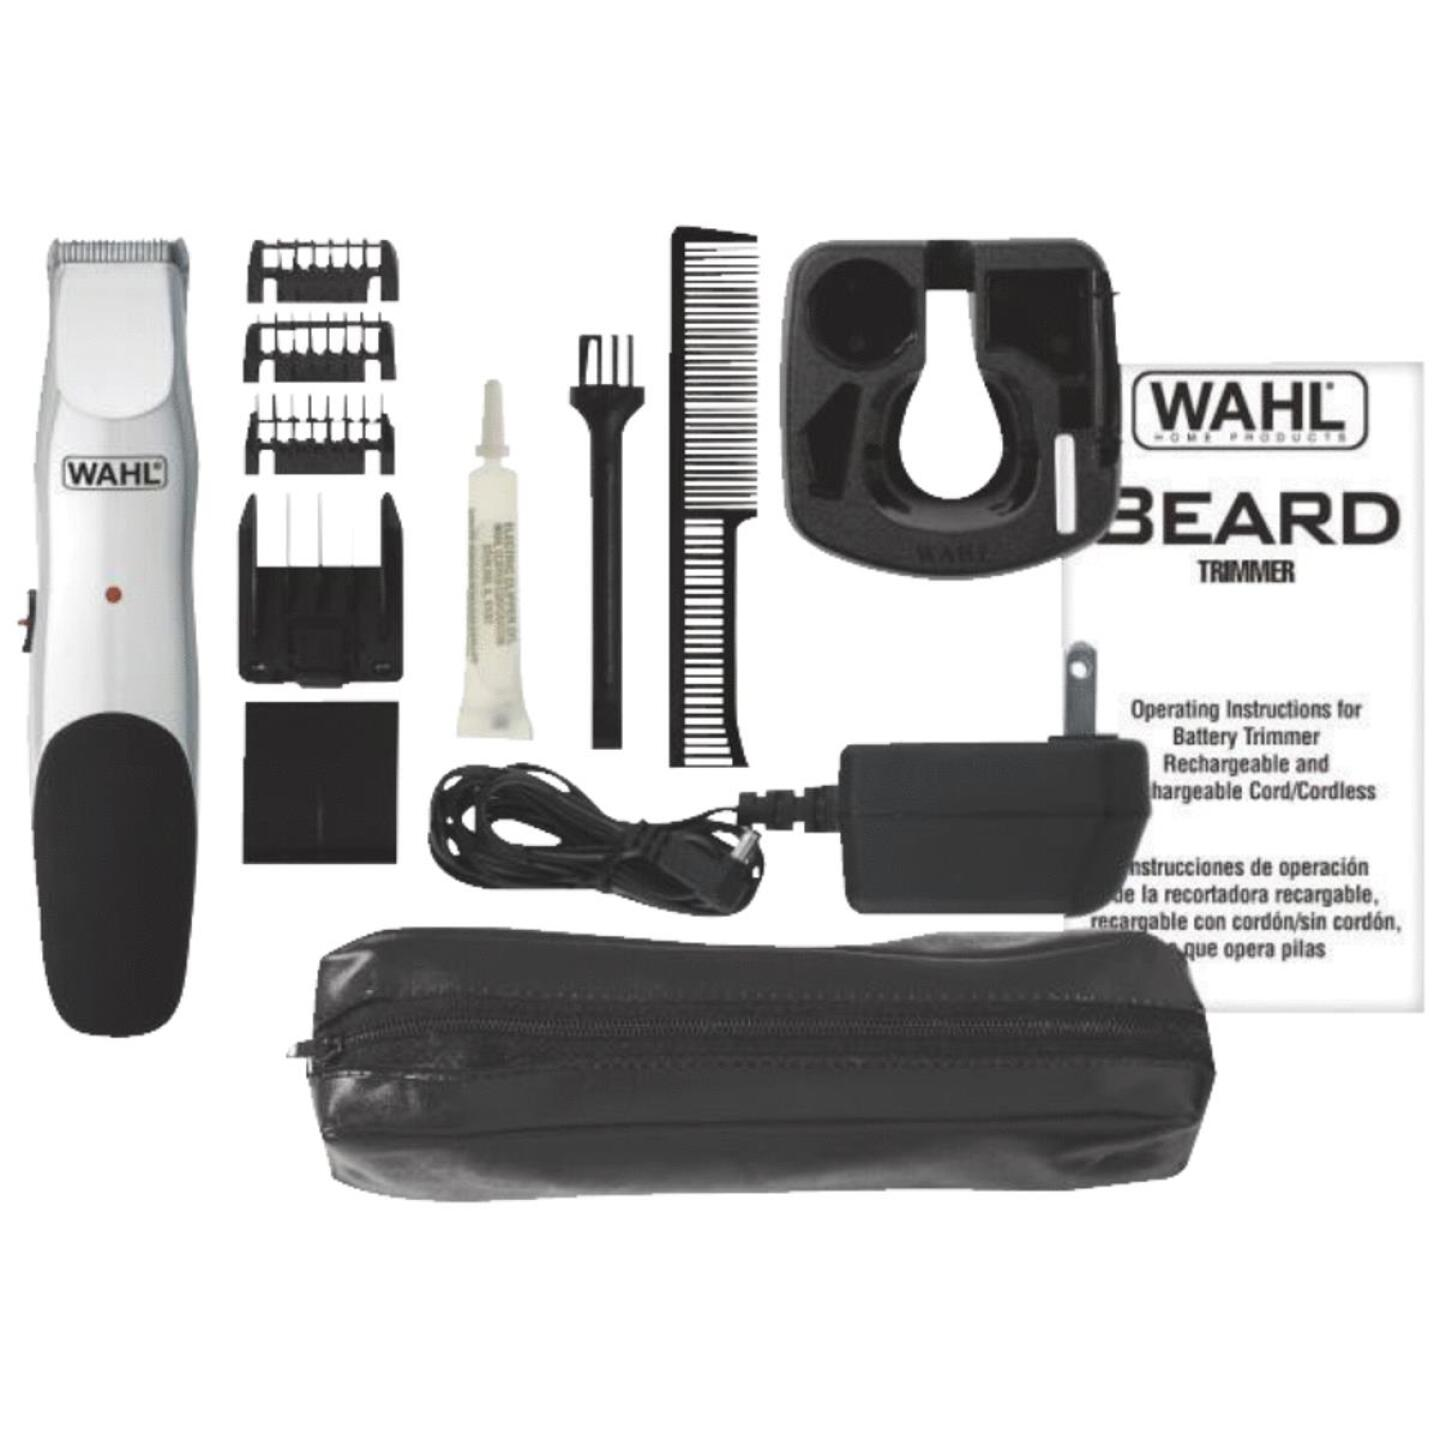 Wahl Rechargeable Beard Trimmer/Groomer Image 1